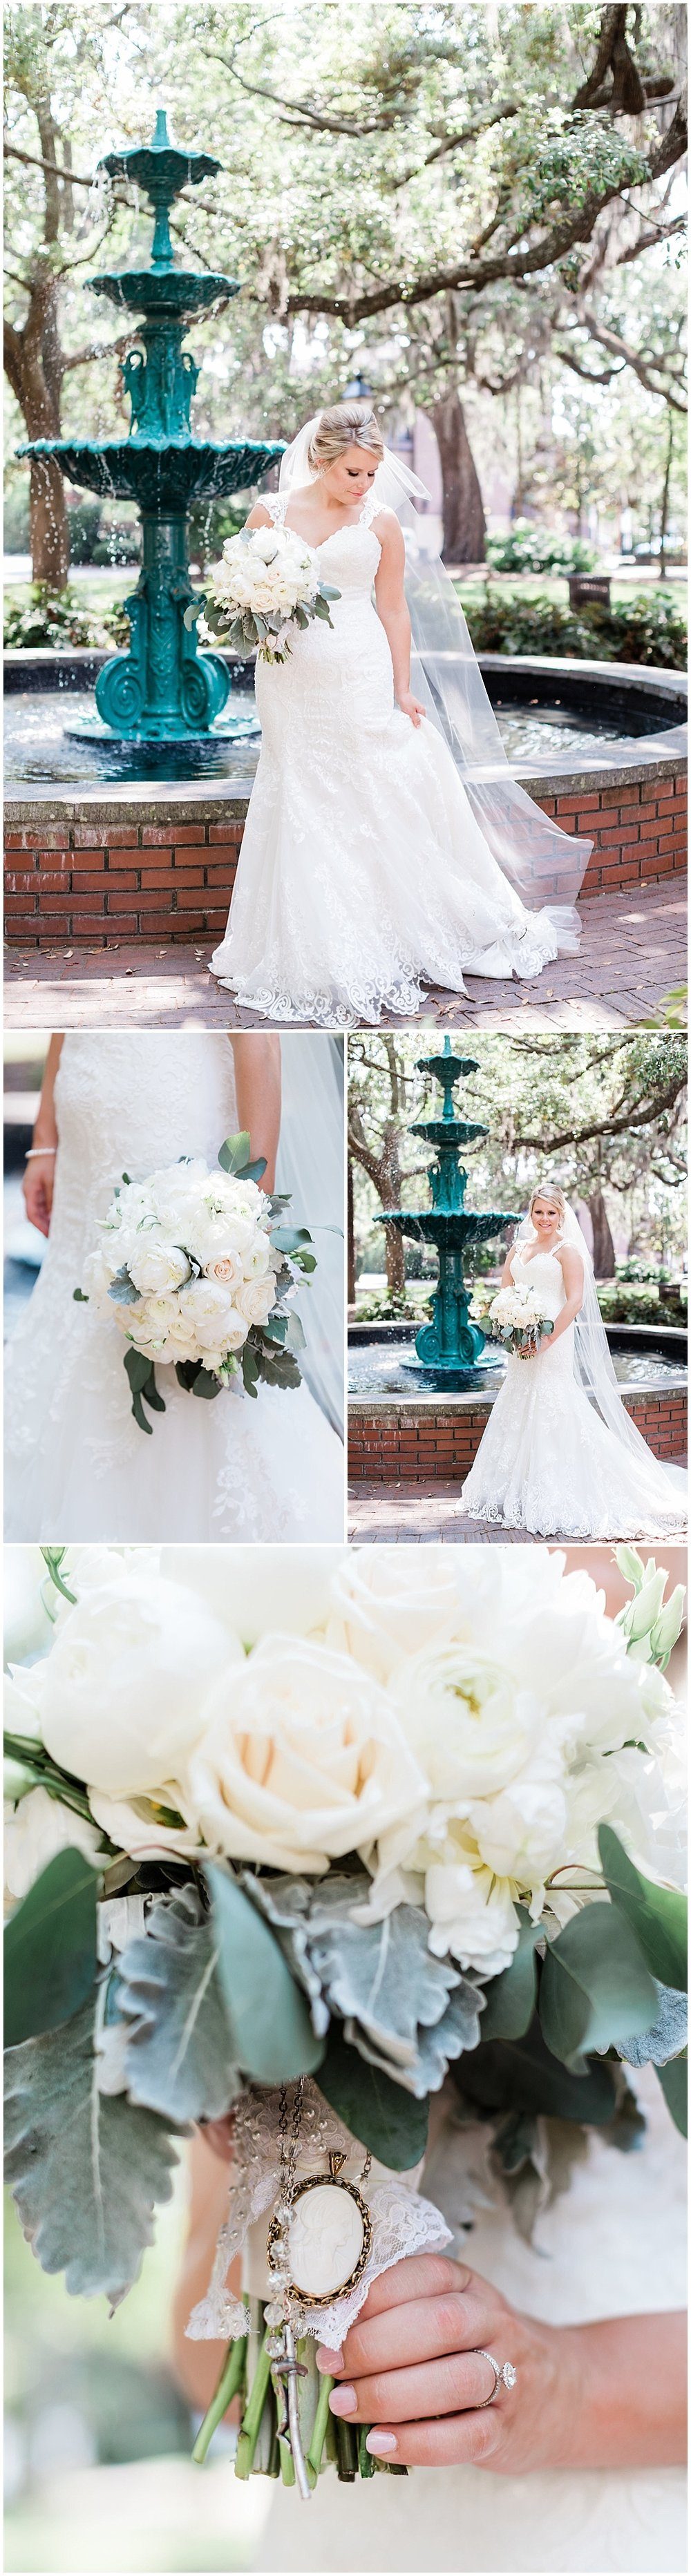 Meghan + Evan's Savannah Wedding | Savannah Wedding Photographer | Apt. B Photography